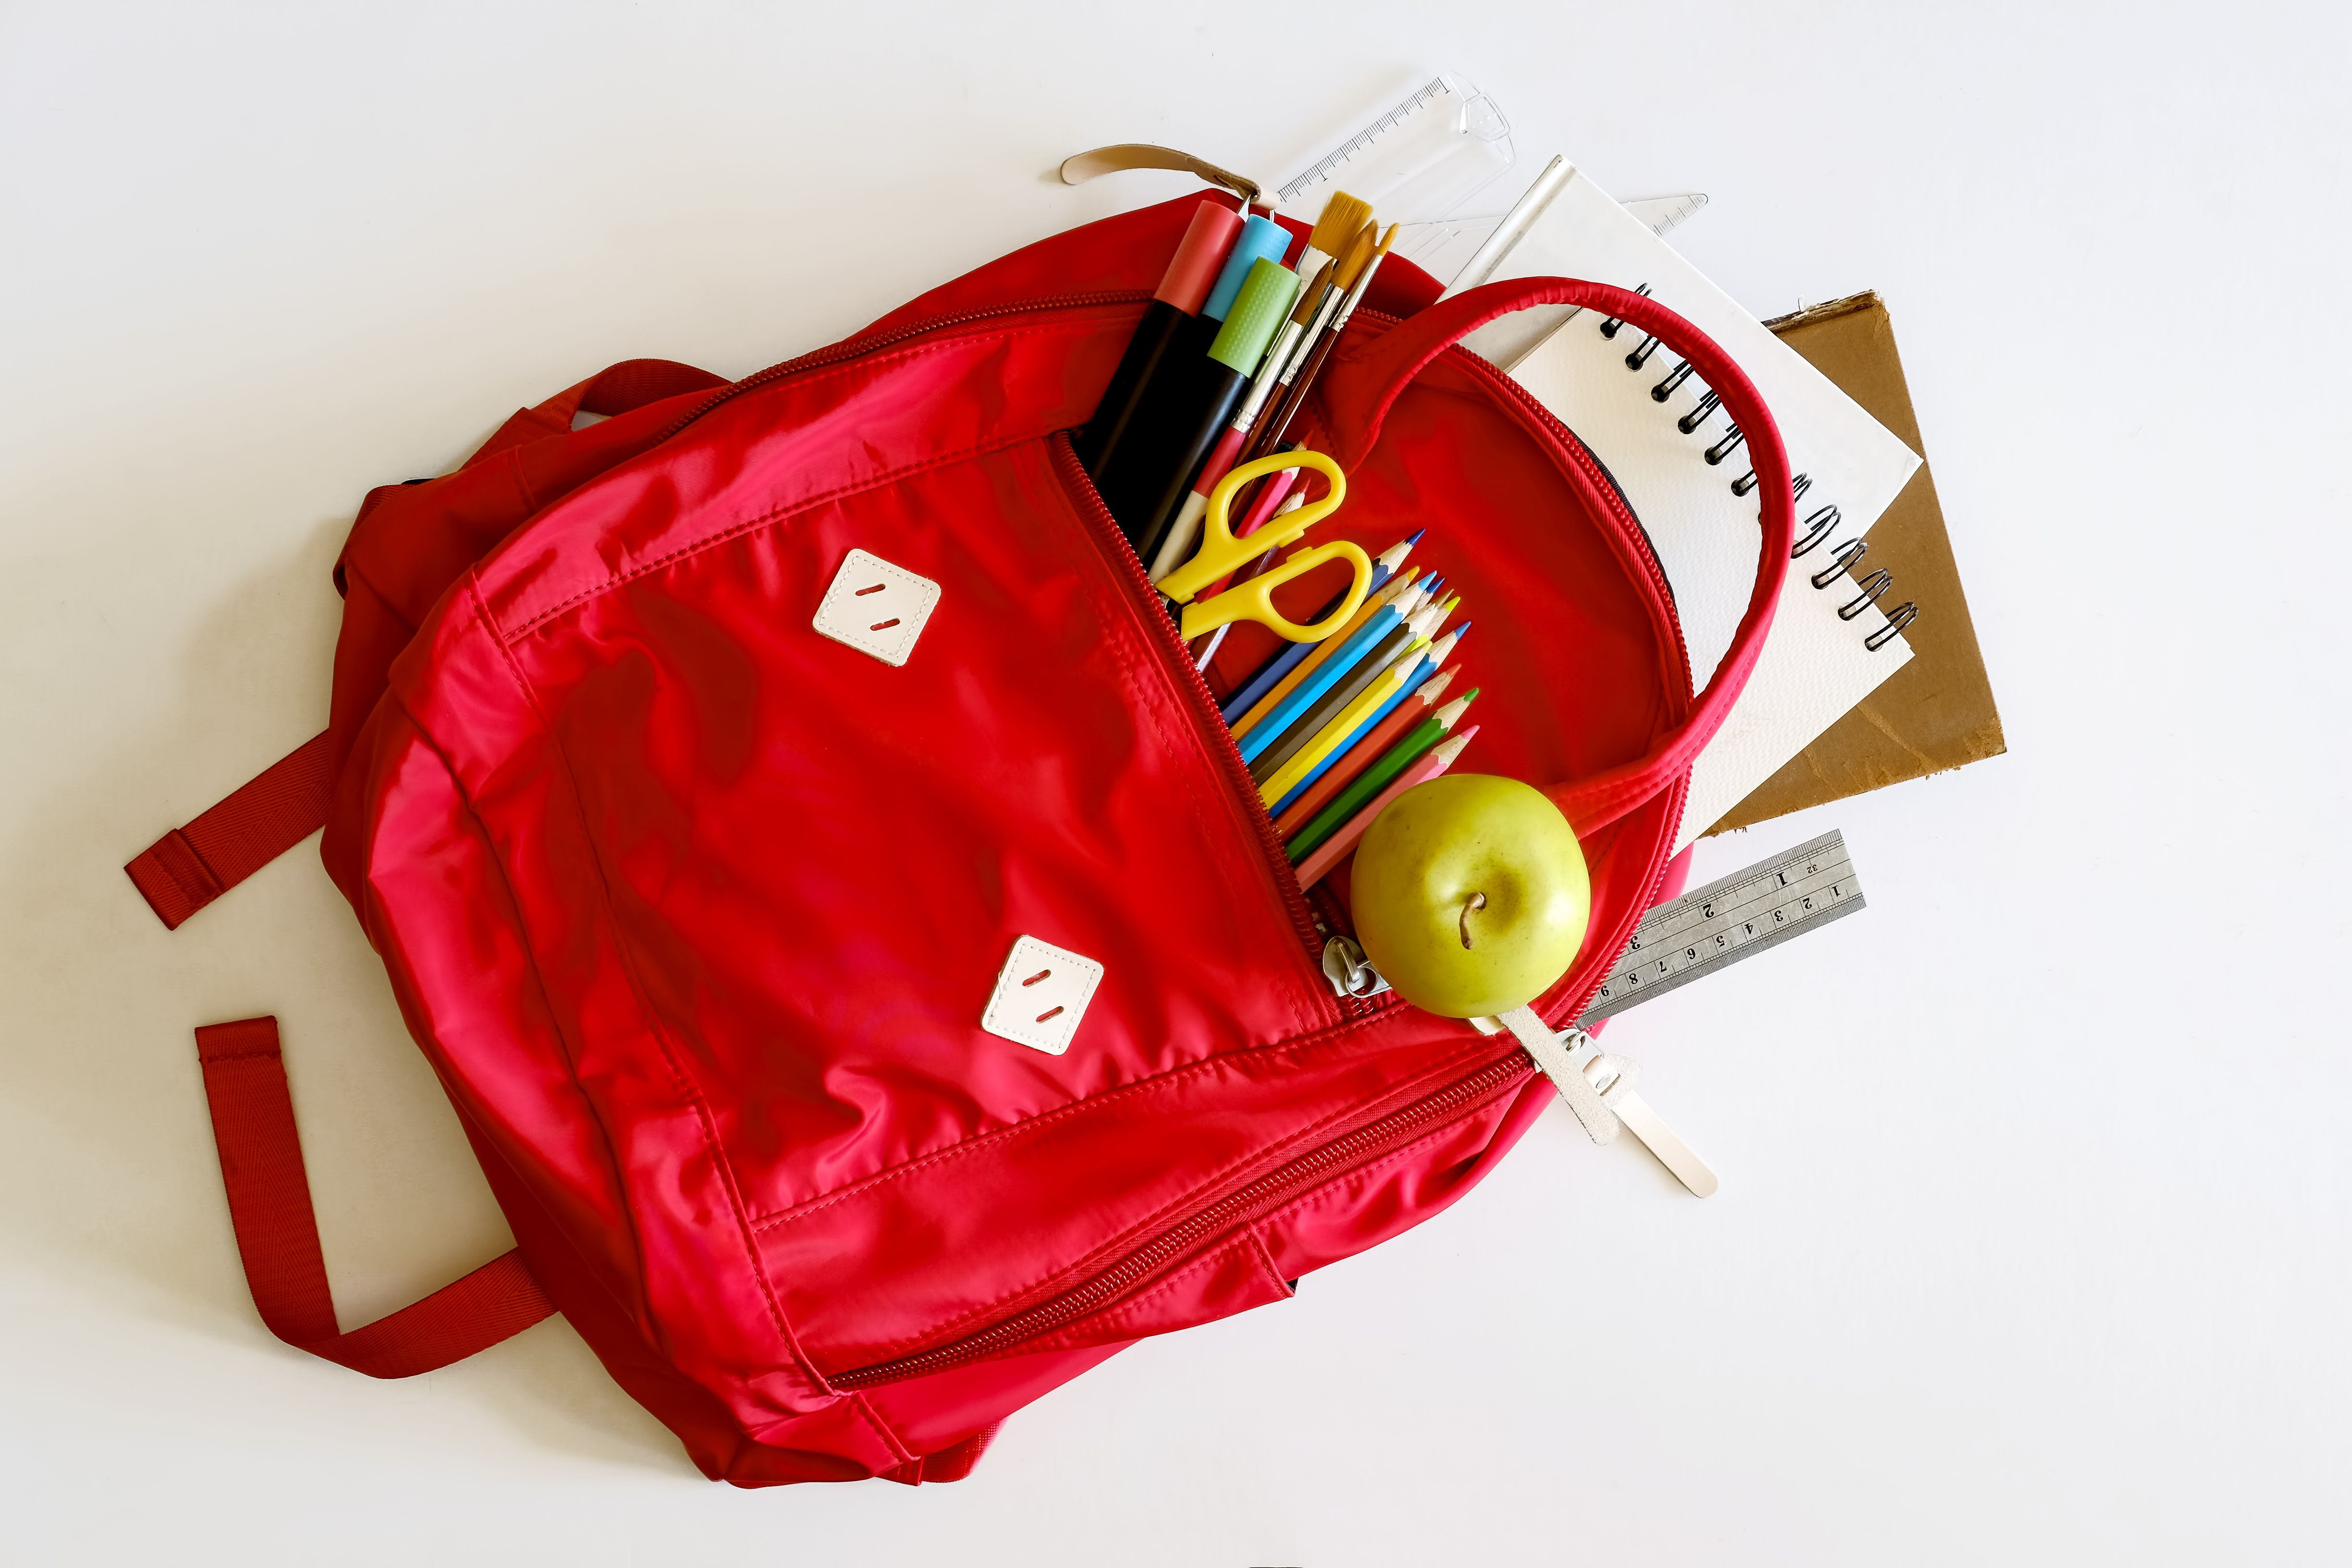 Backpack with school supplies spilling out